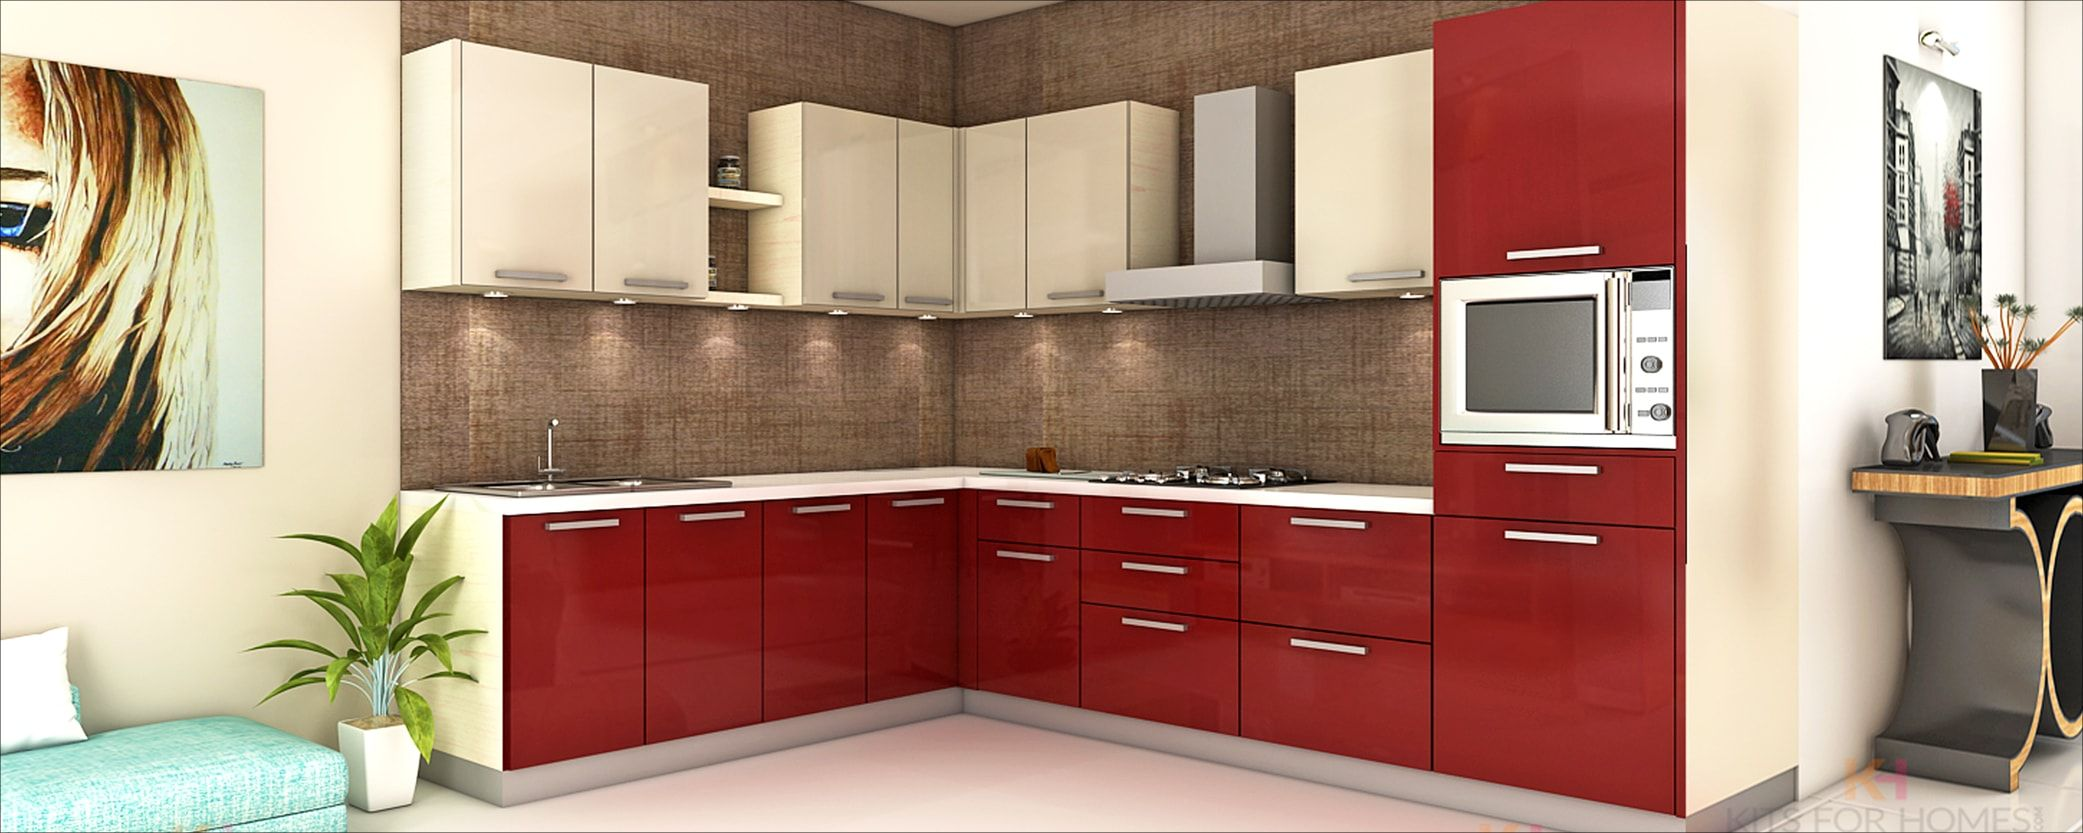 L Shaped Kitchenkitsforhomes  Modular Kitchens  Pinterest Alluring Kitchen Designs Online Review